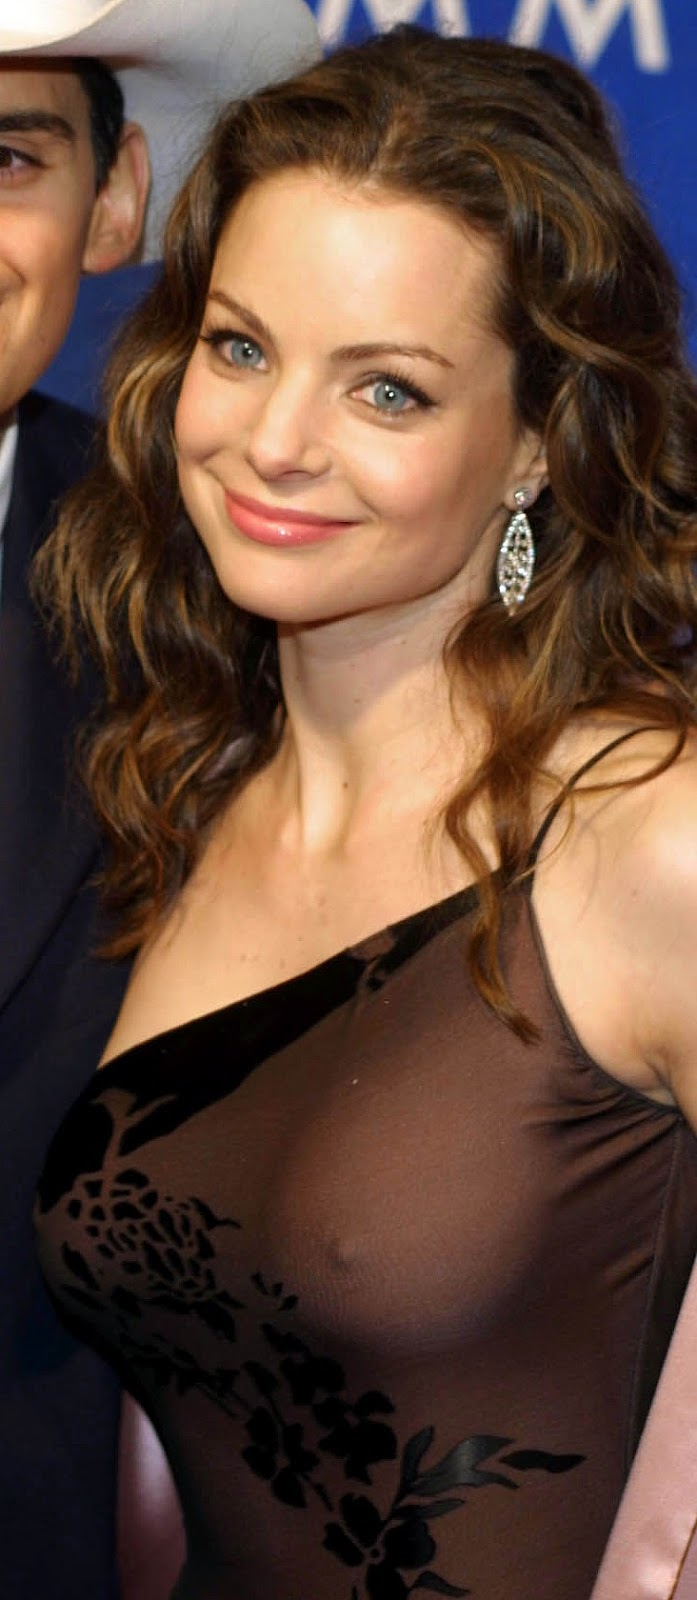 Suggest Kimberly williams paisley panties